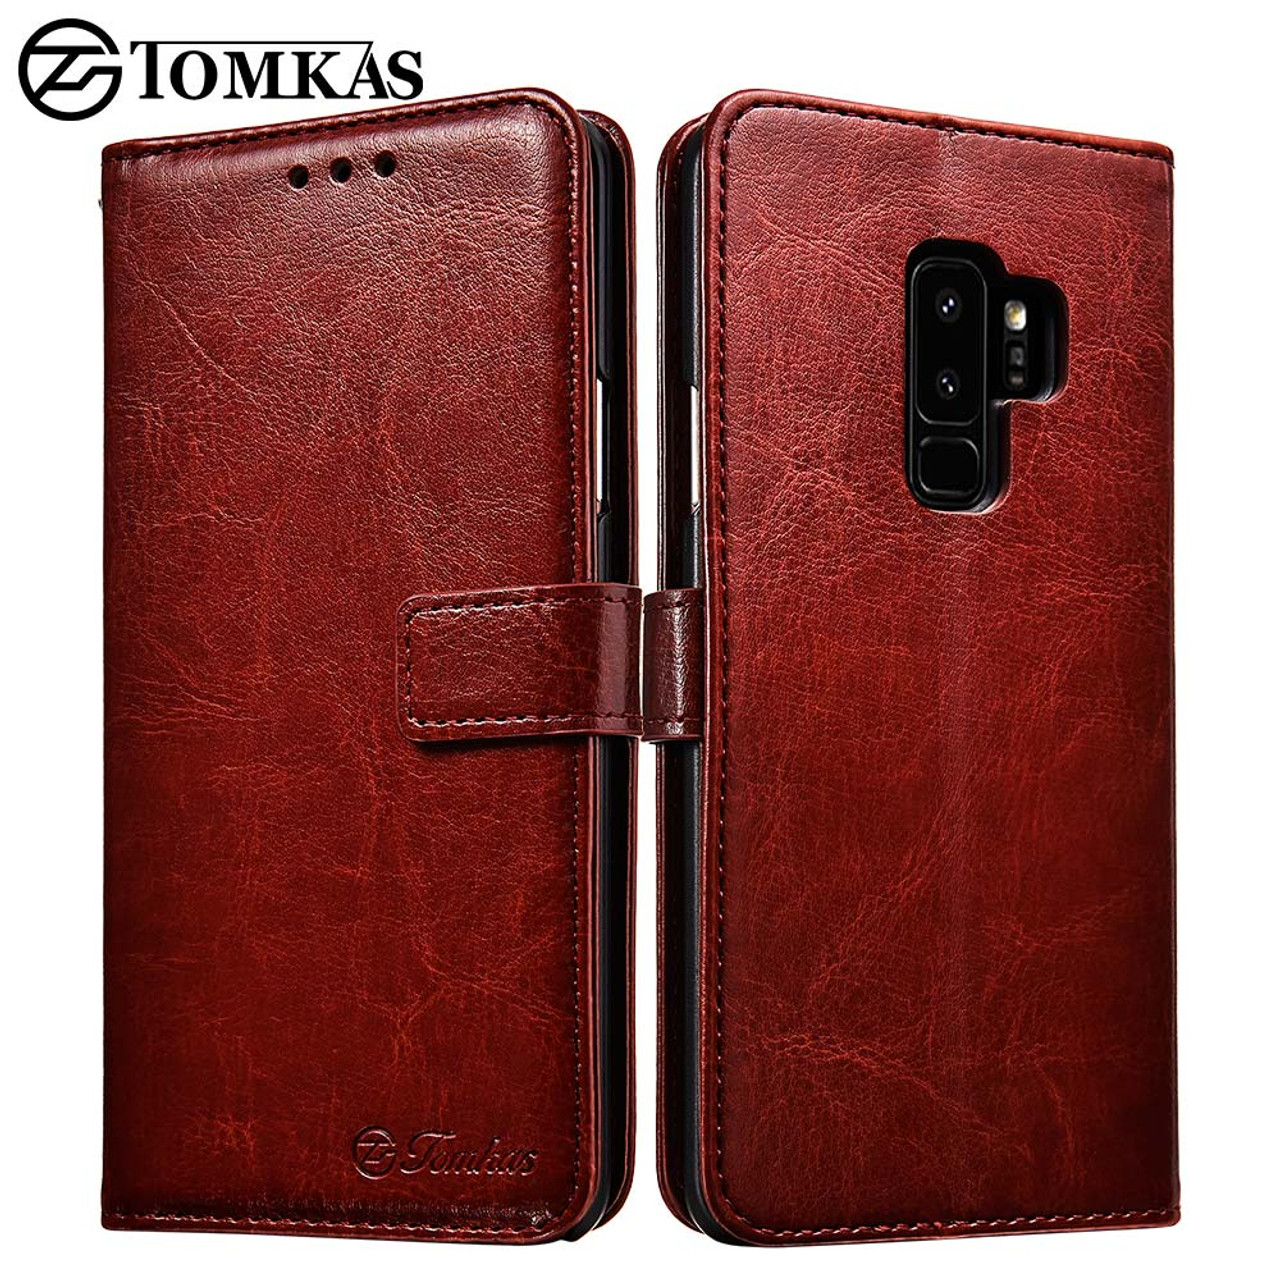 f1a4146e068 S9 Luxury Flip Leather Case For Samsung Galaxy S9 S9 Plus Wallet Card  Pocket Coque Cover ...